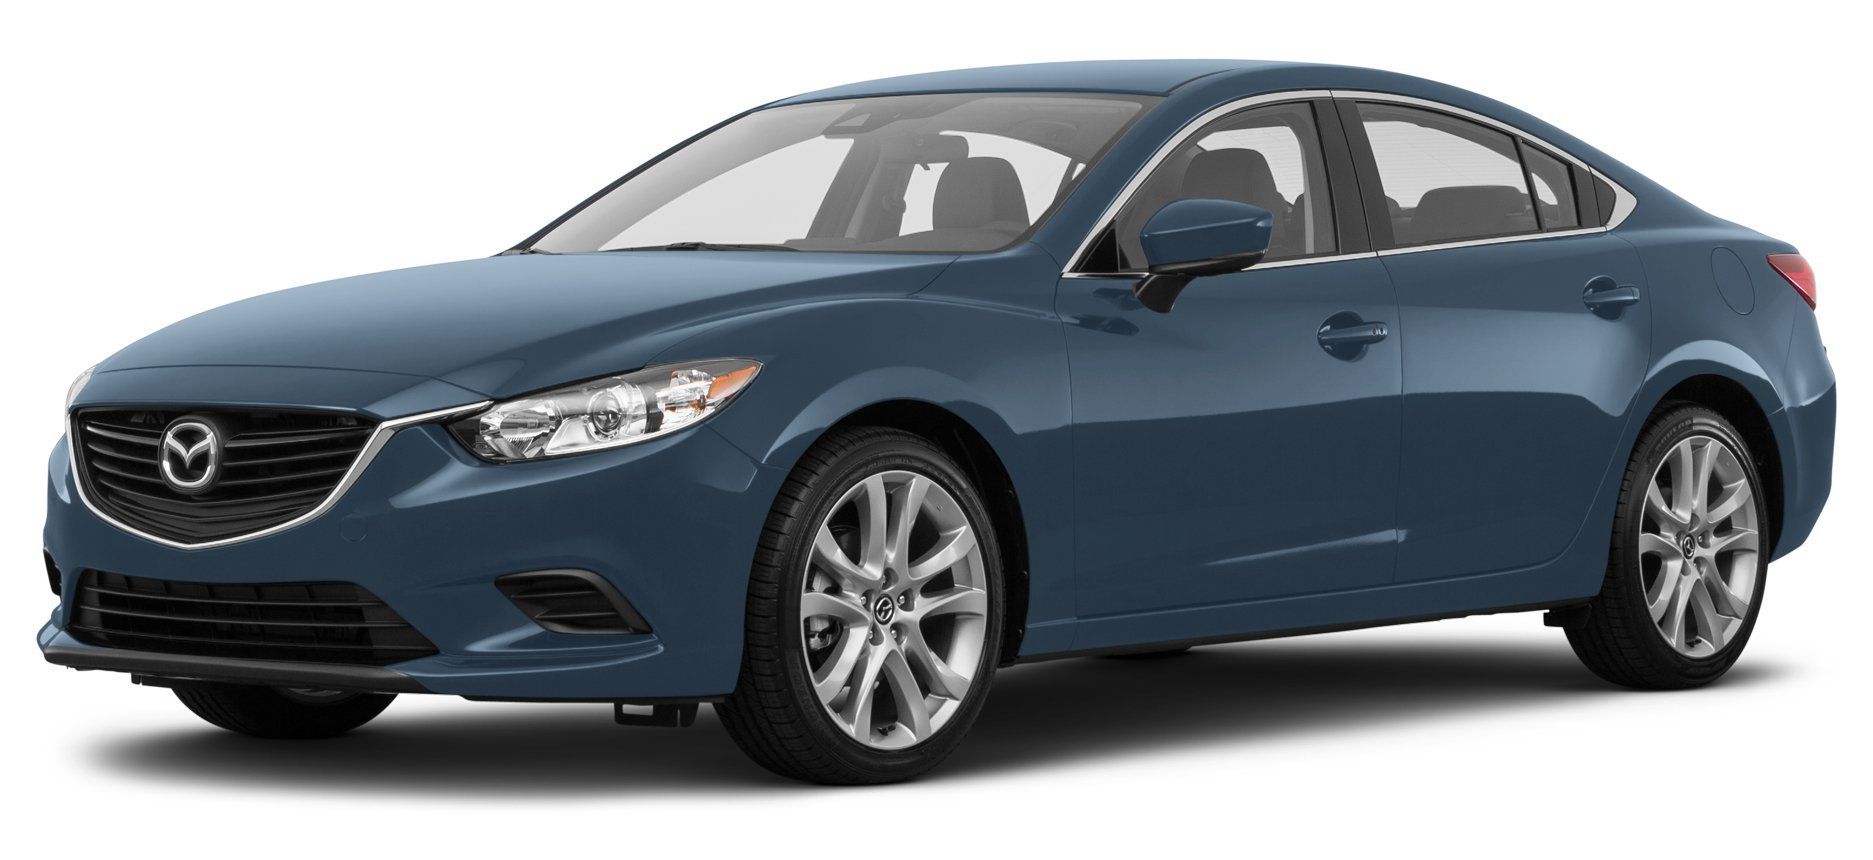 2017 mazda 6 reviews images and specs vehicles. Black Bedroom Furniture Sets. Home Design Ideas